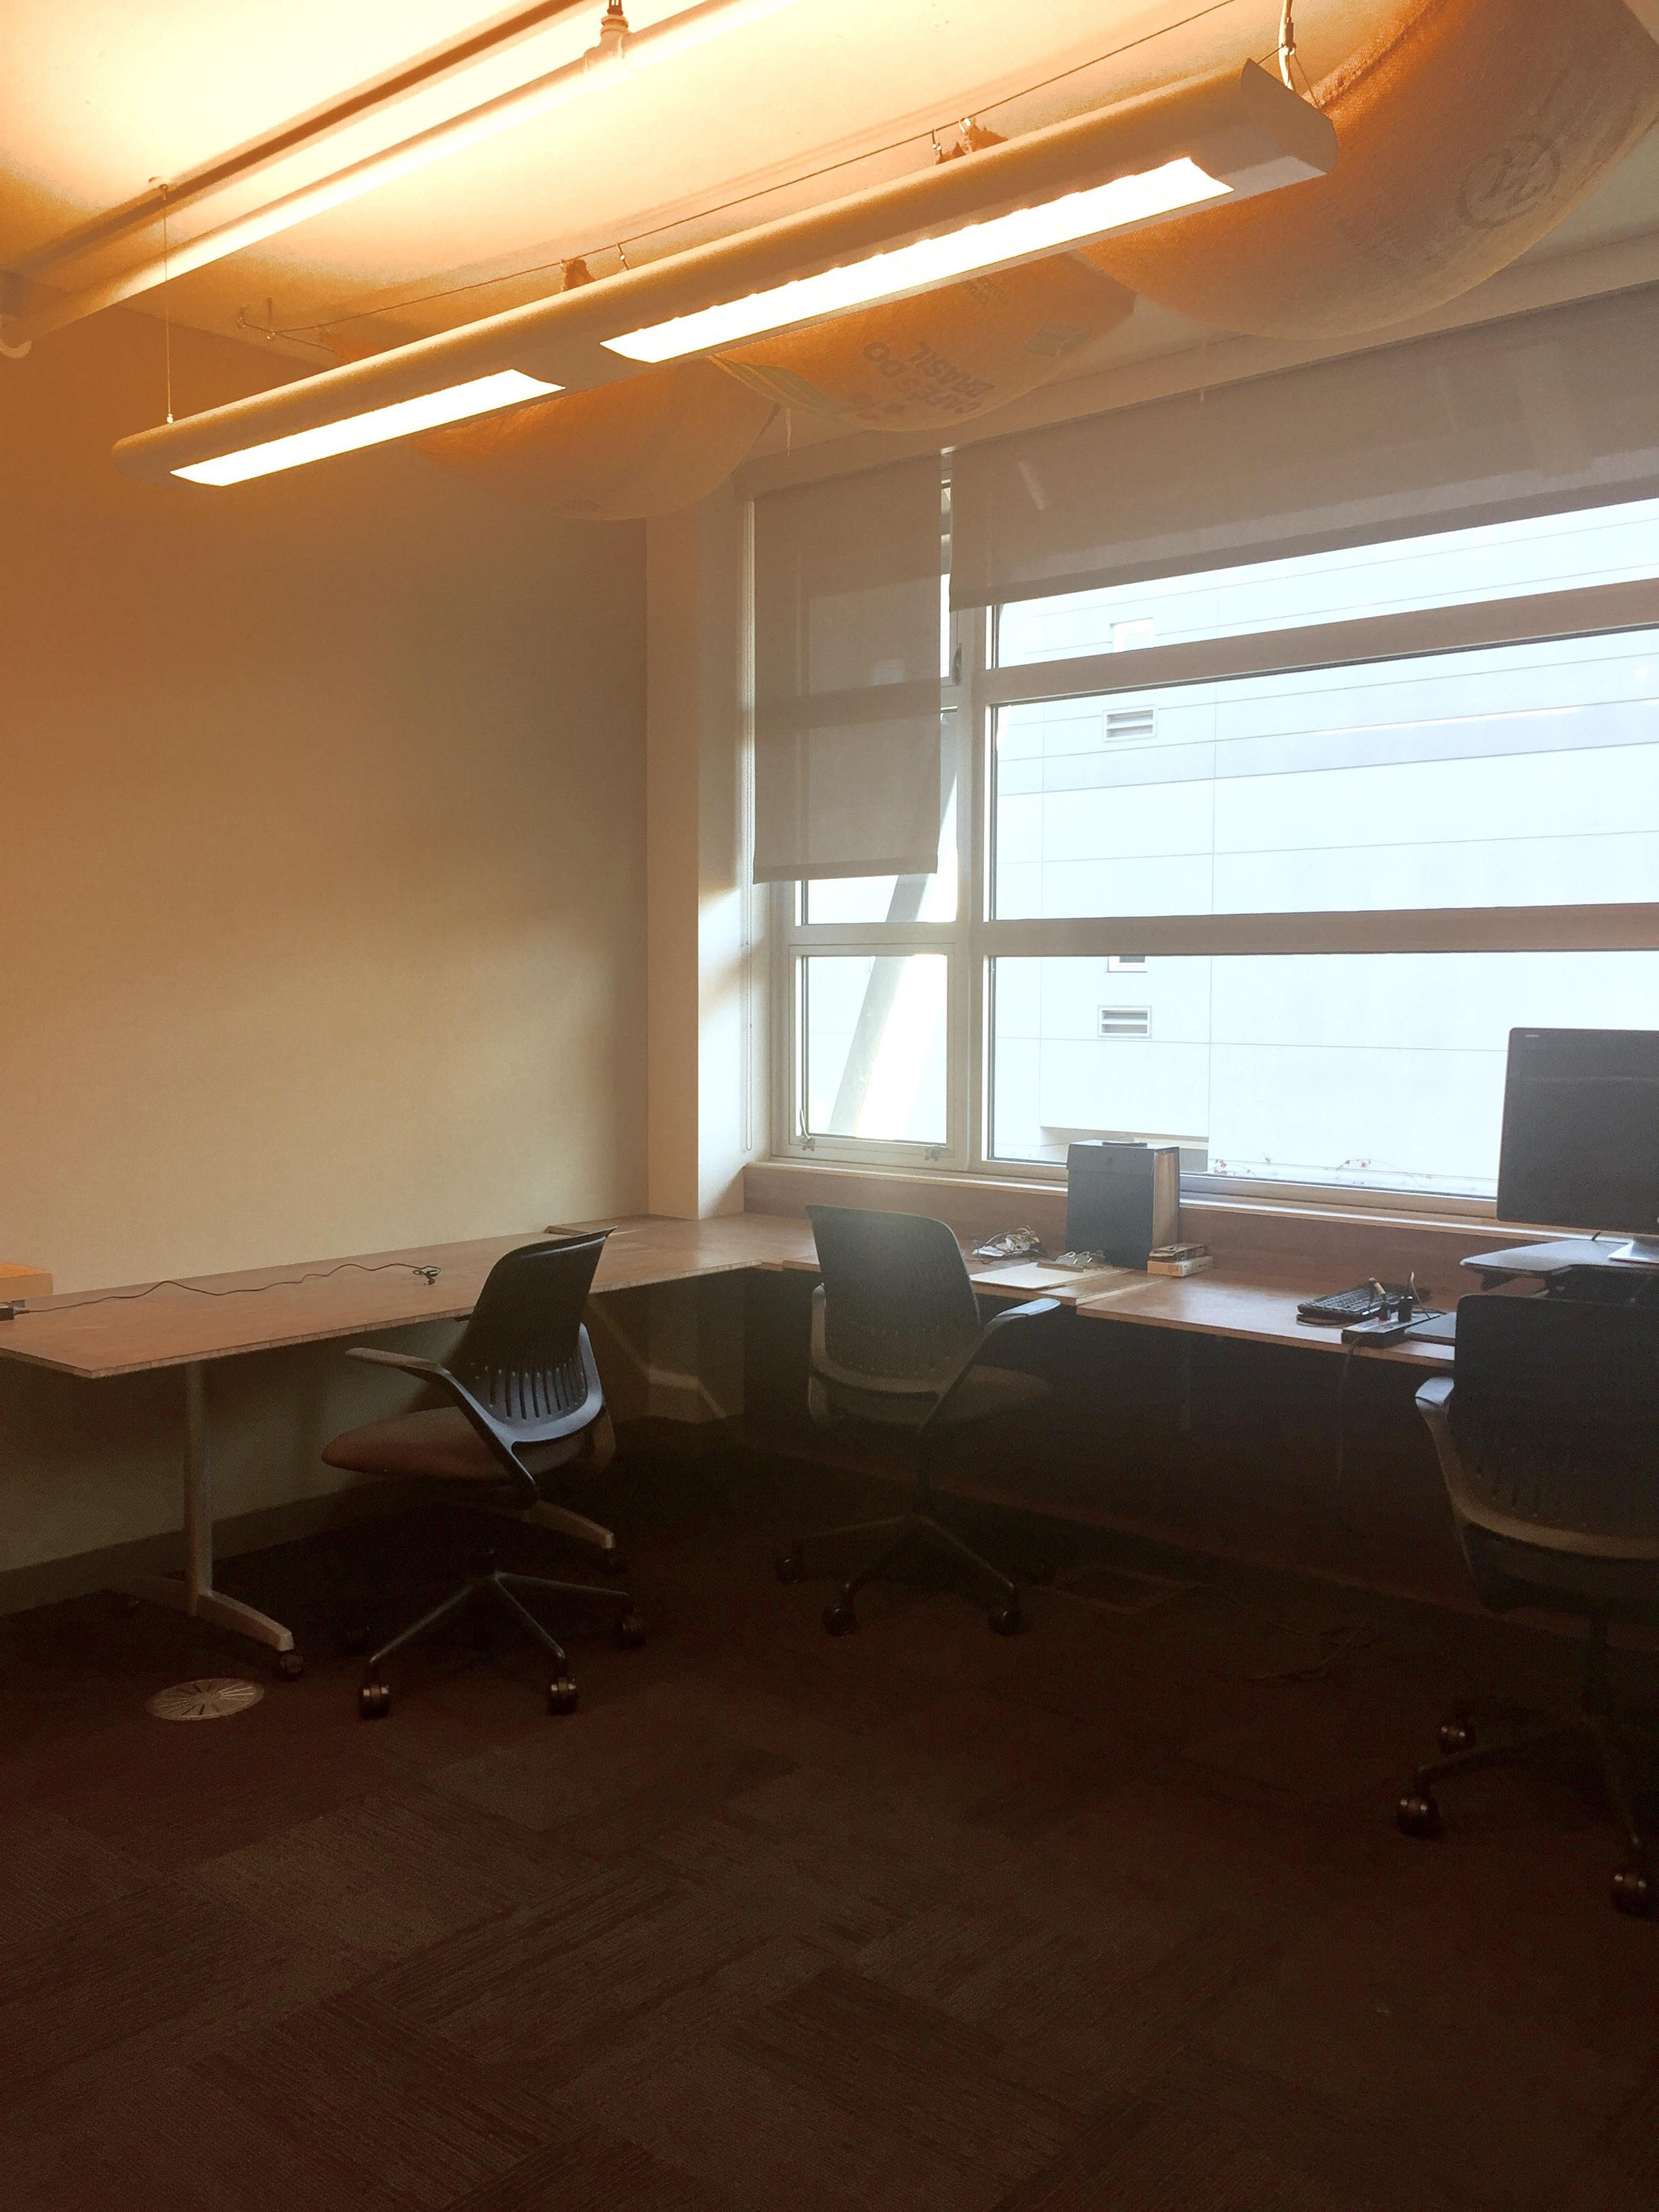 Impact Hub Berkeley - Private Office Space for 5